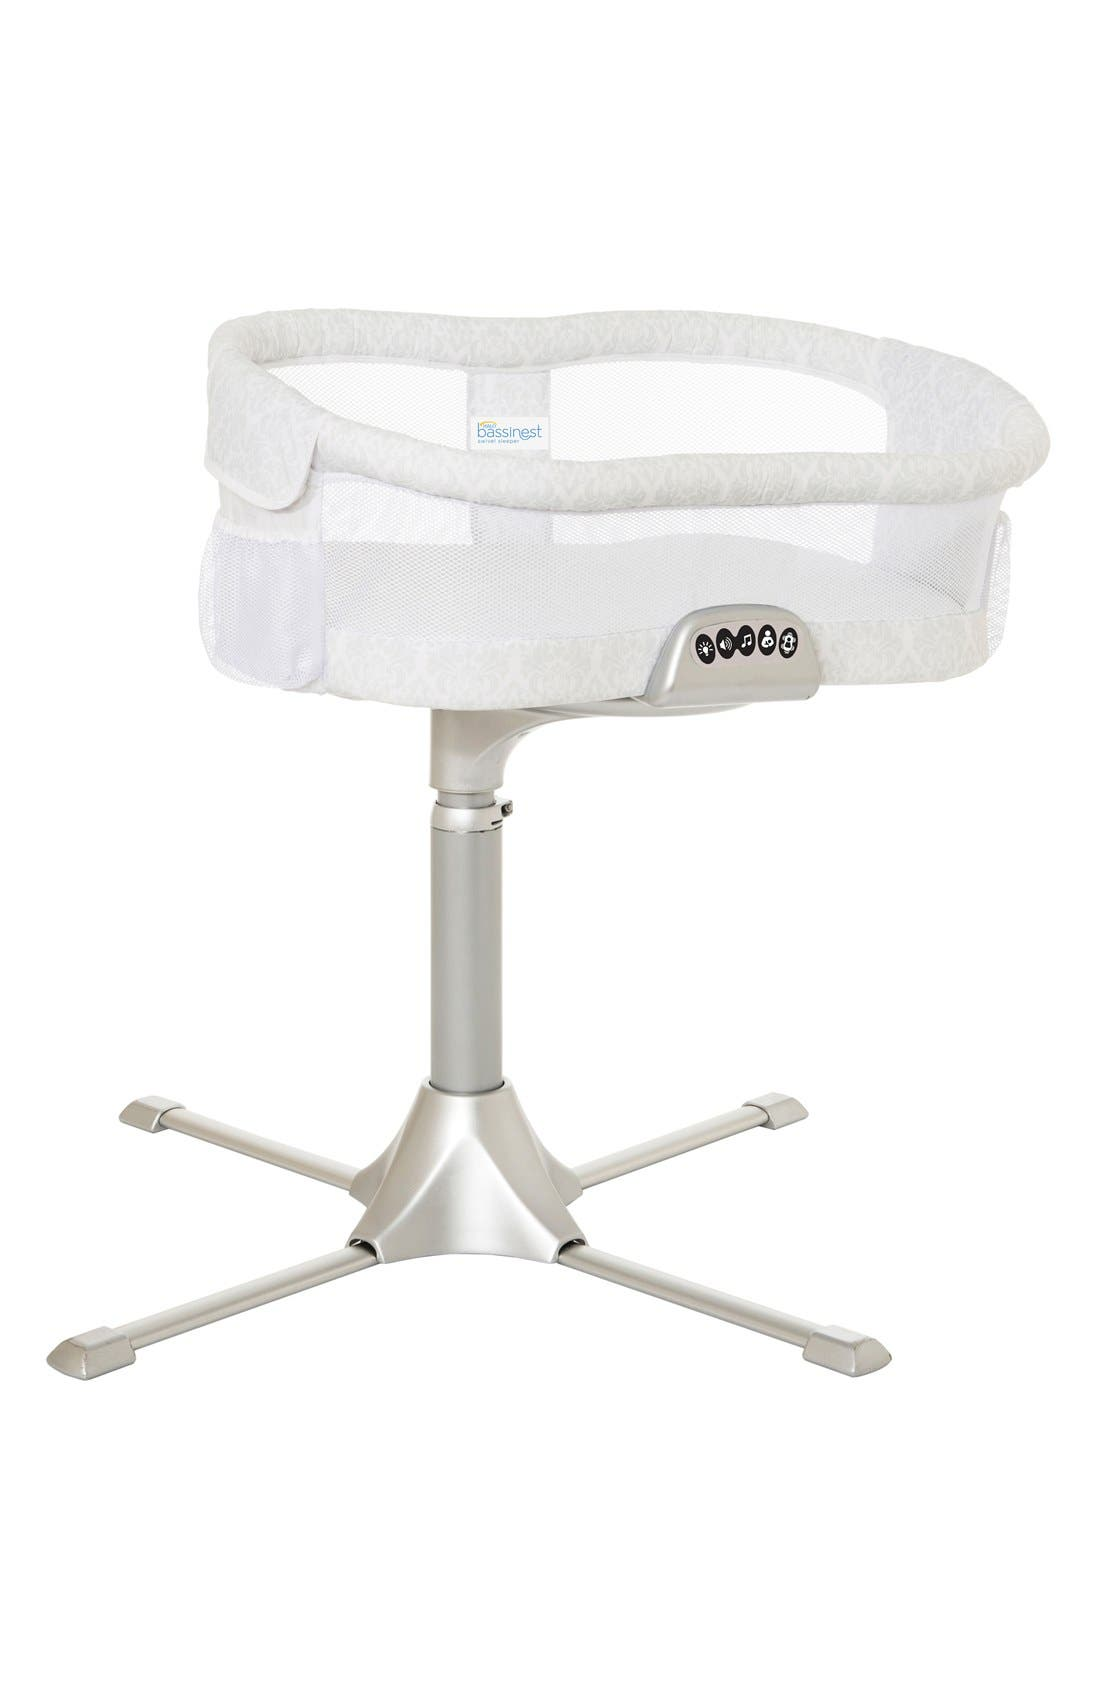 Main Image - Halo Innovations 'Bassinest' Bedside Swivel Sleeper (Baby)